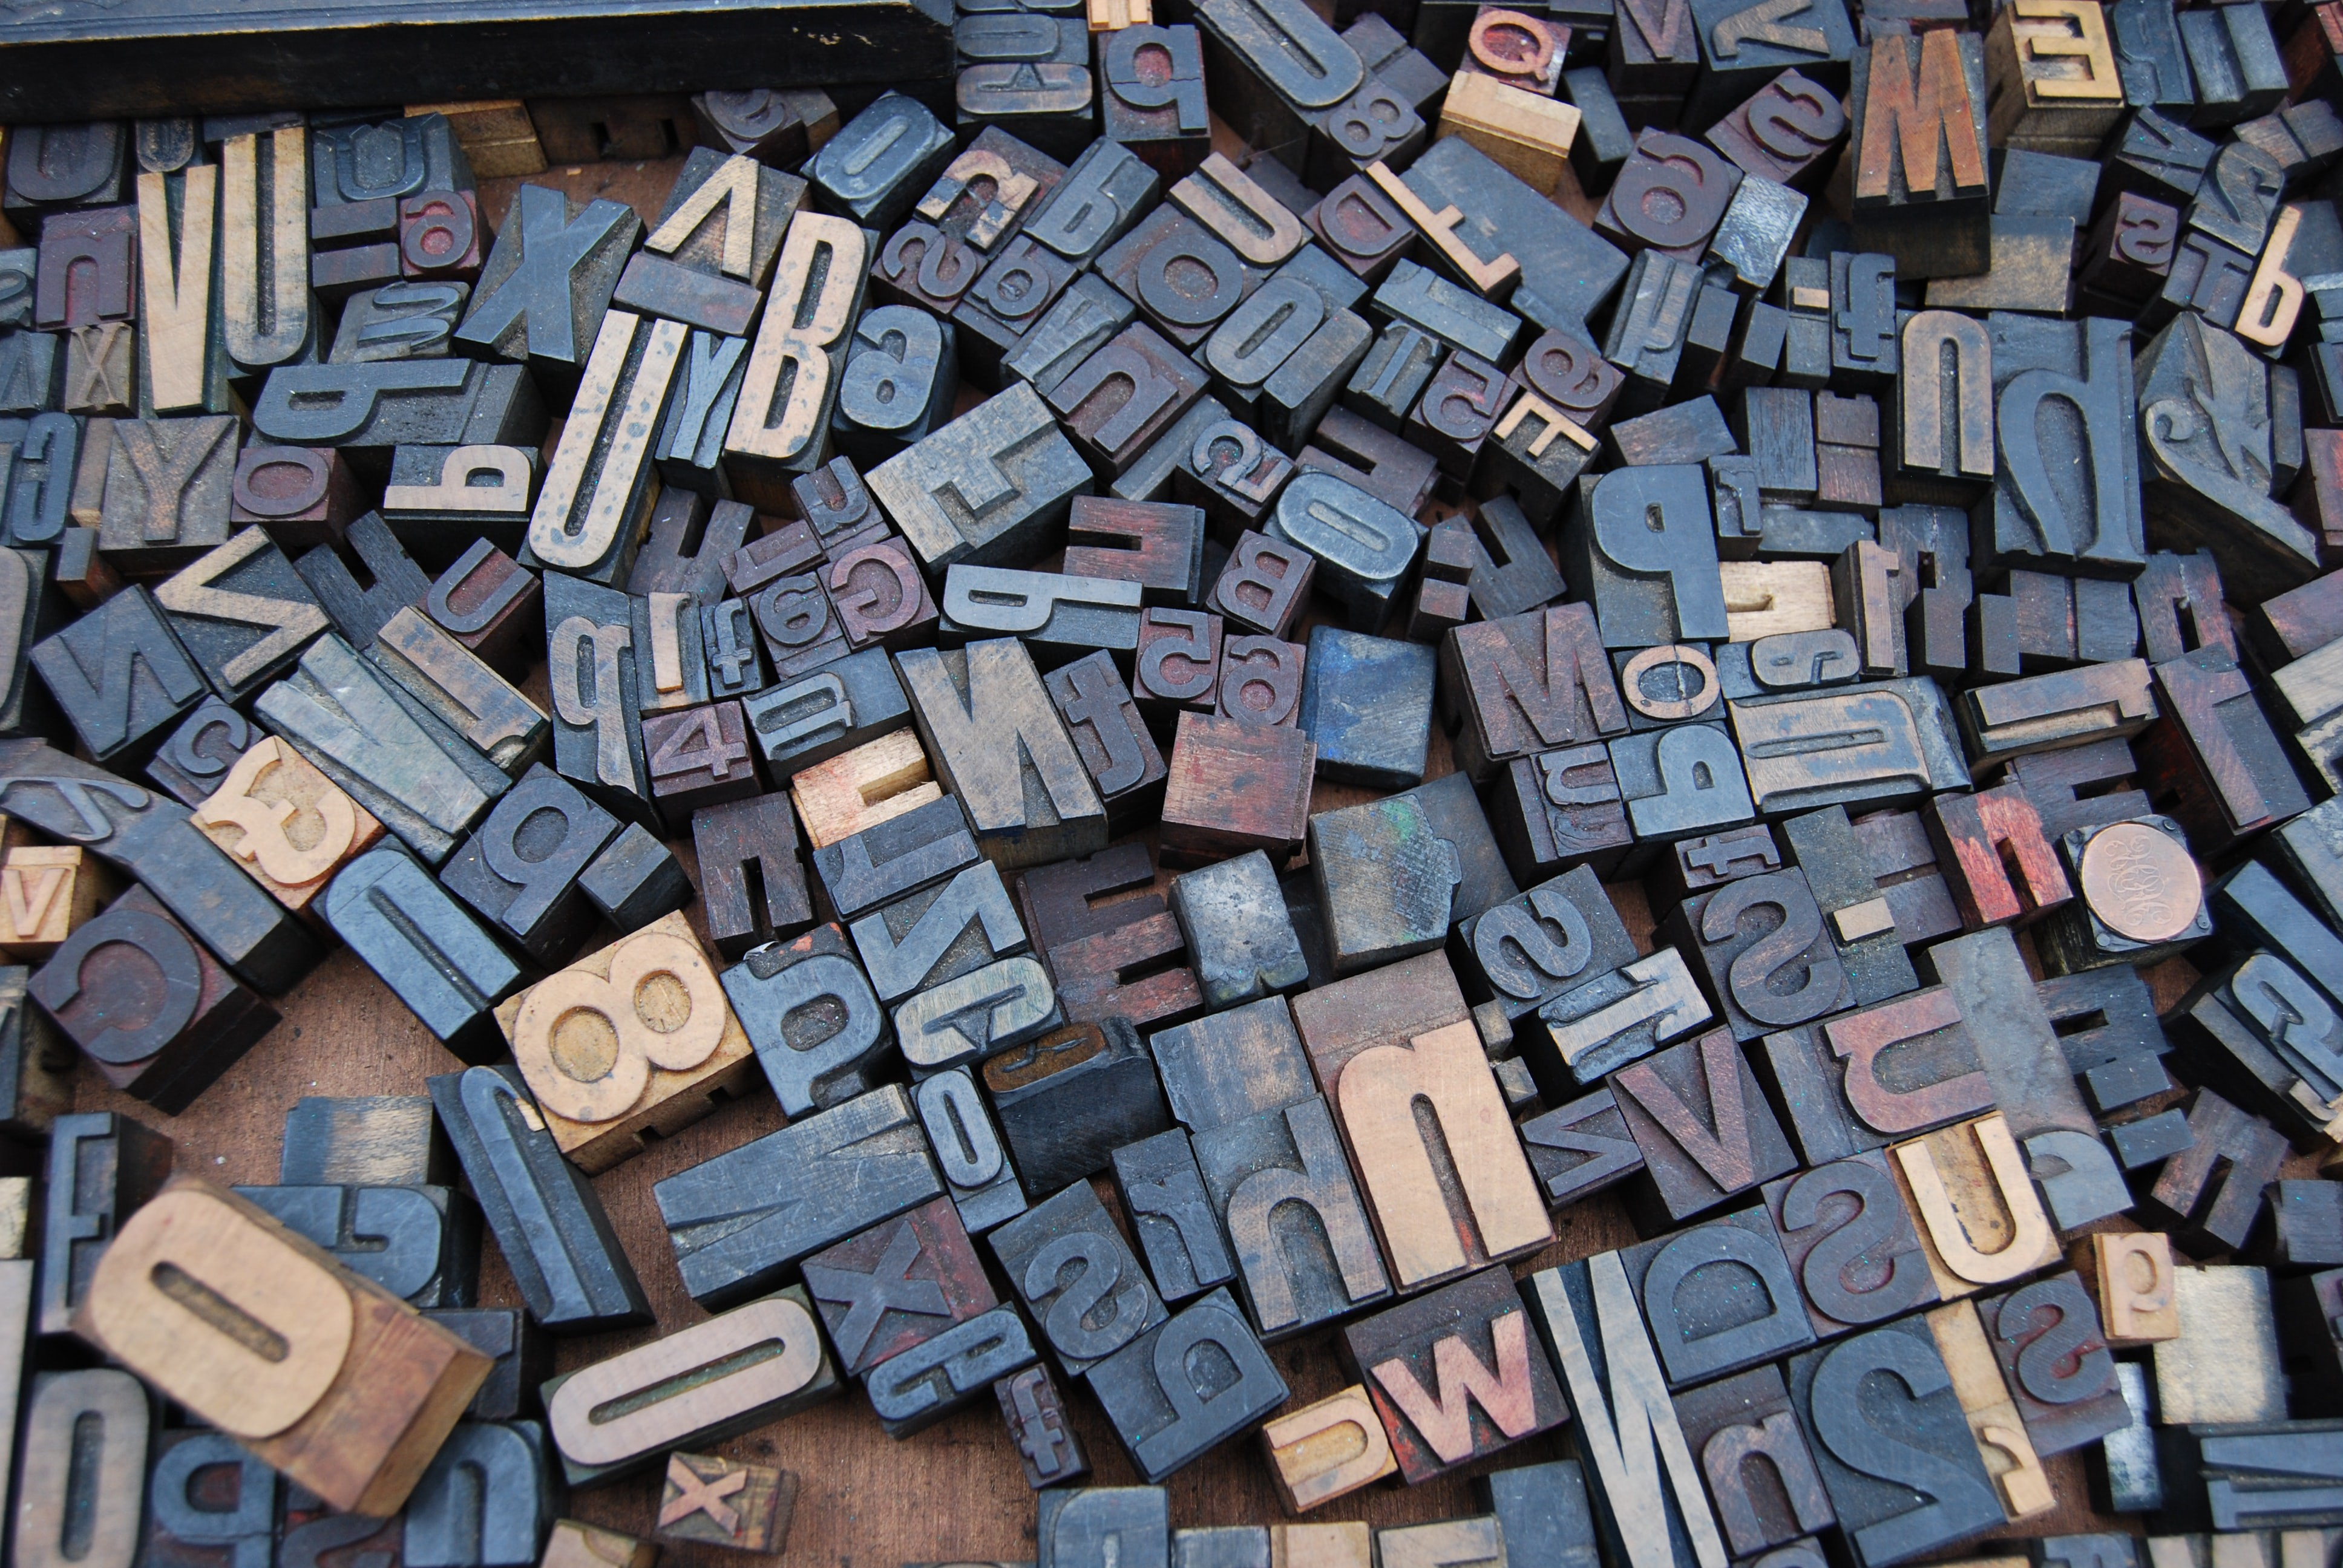 Photo of typesetting letters of various shapes and sizes.